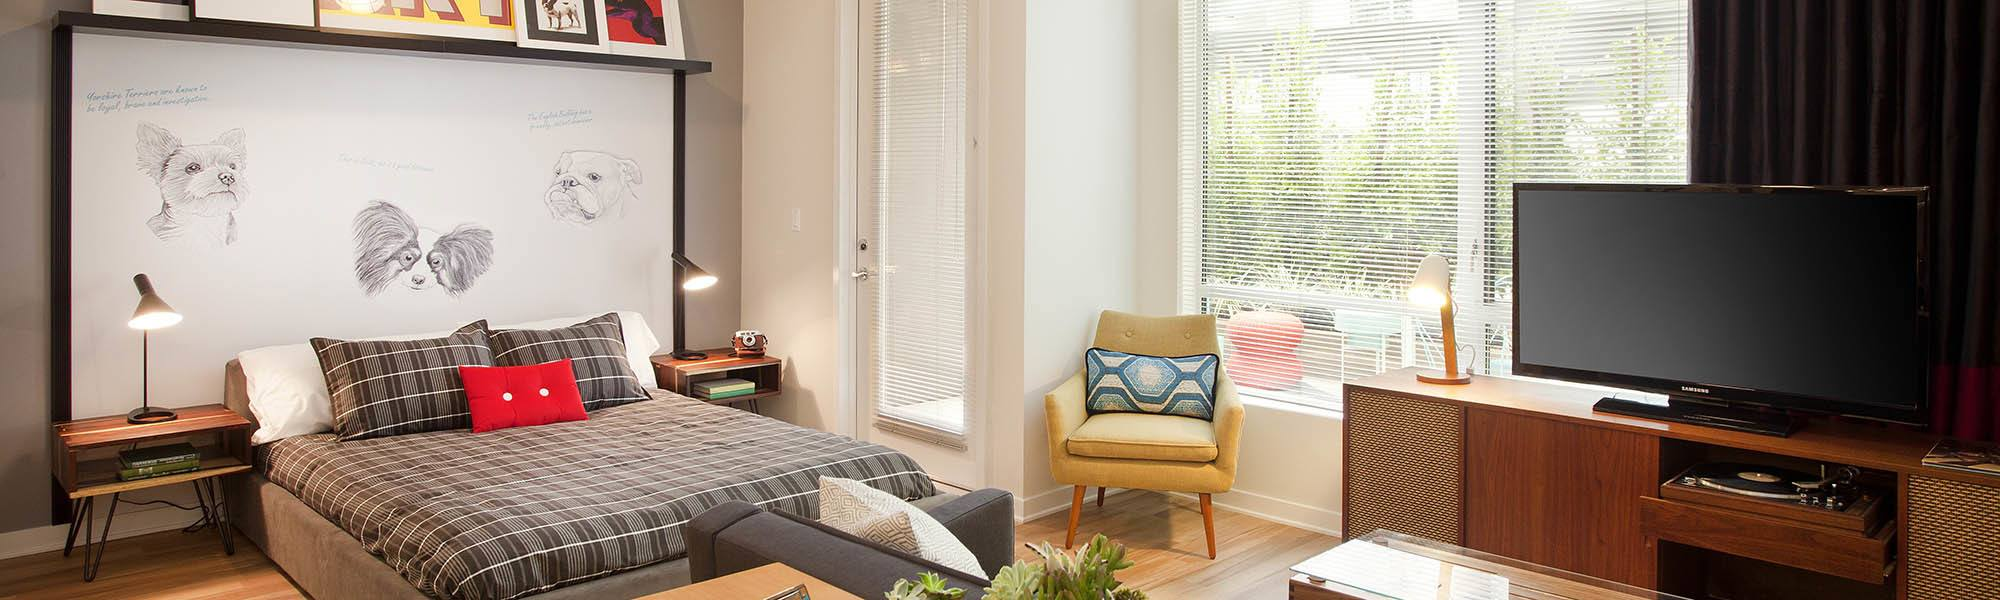 View our floor plans at Brio Apartment Homes on our website